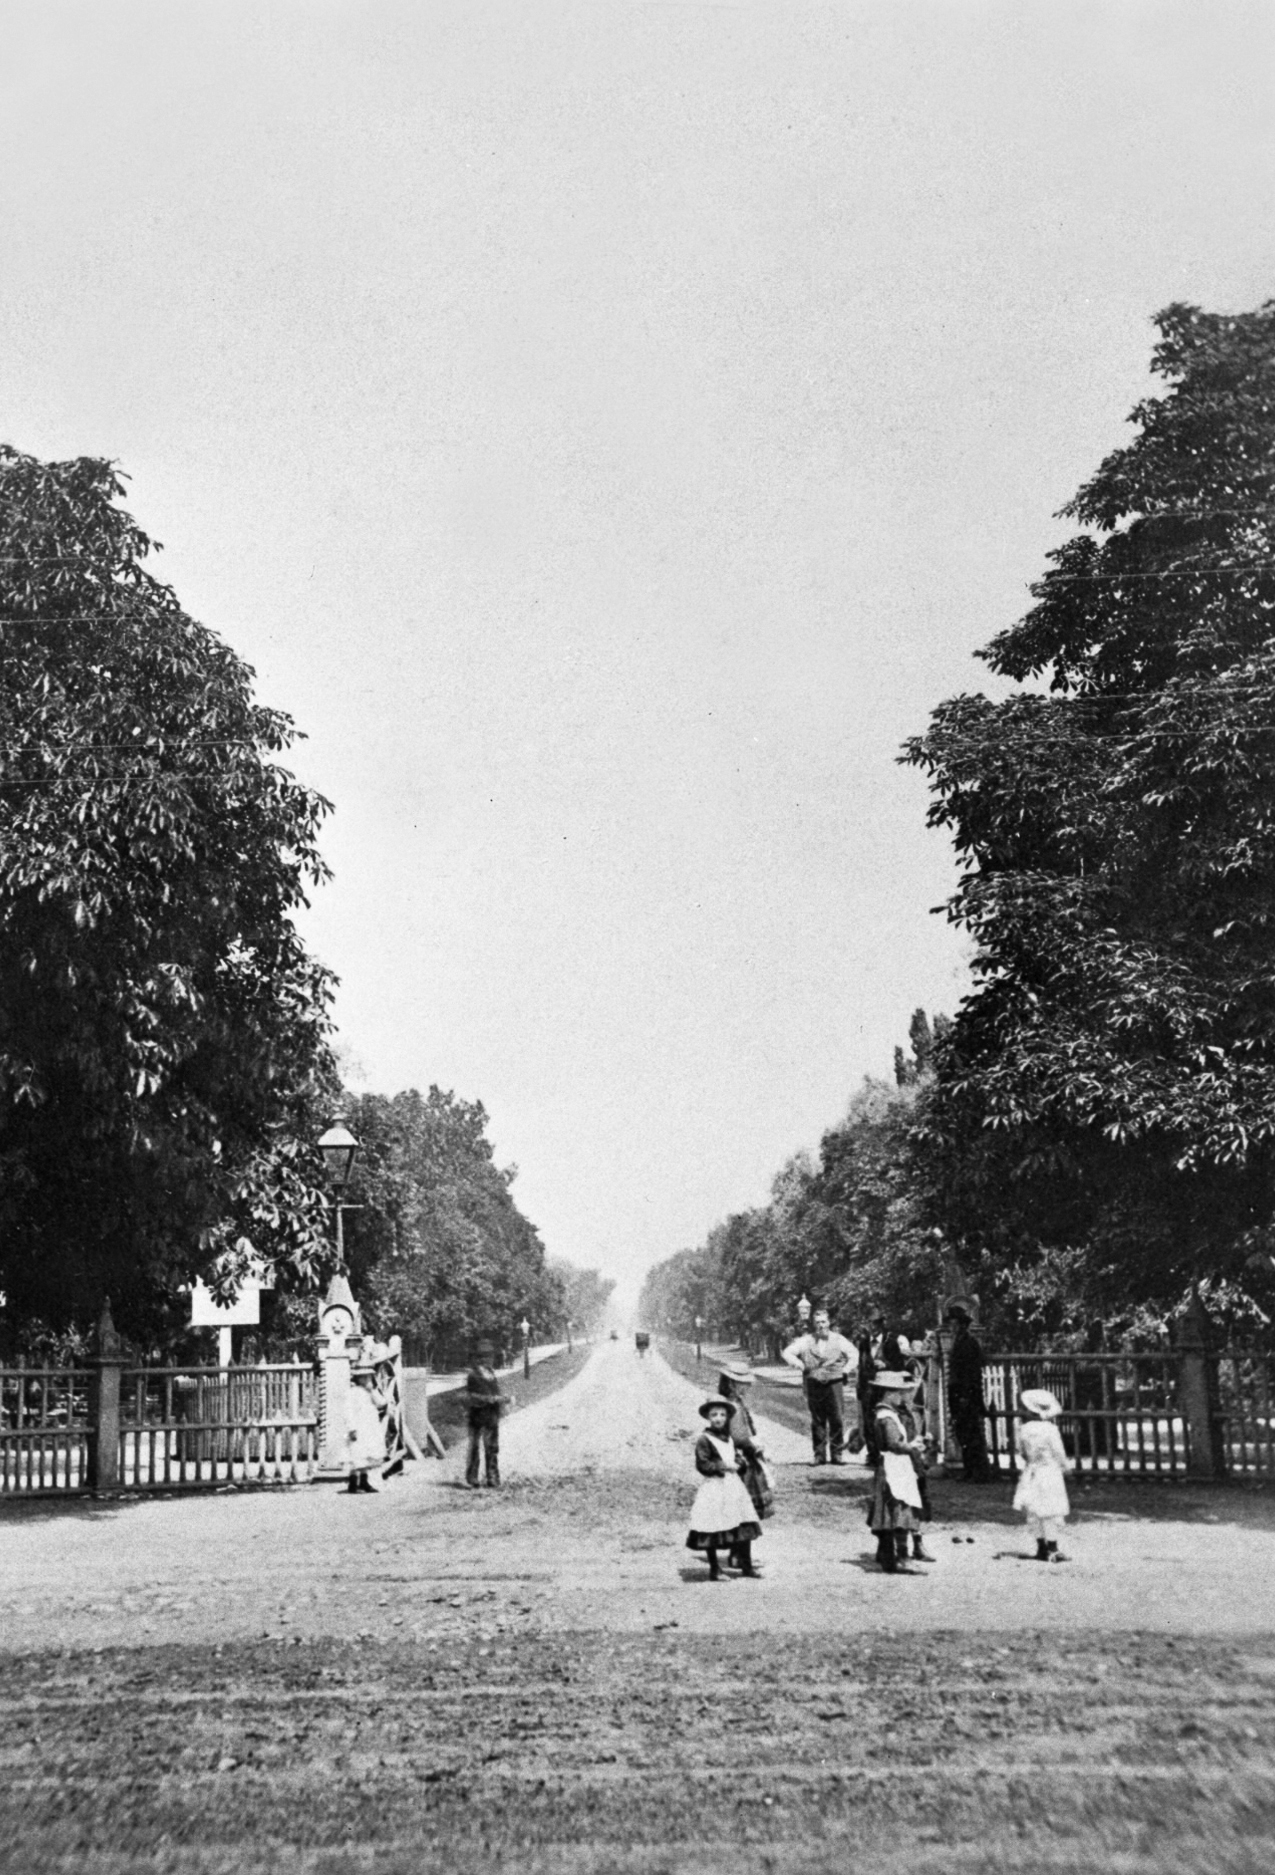 A-CCT-ON-Toronto-pictures-r-4112-University from Queen 1880 (Crop)